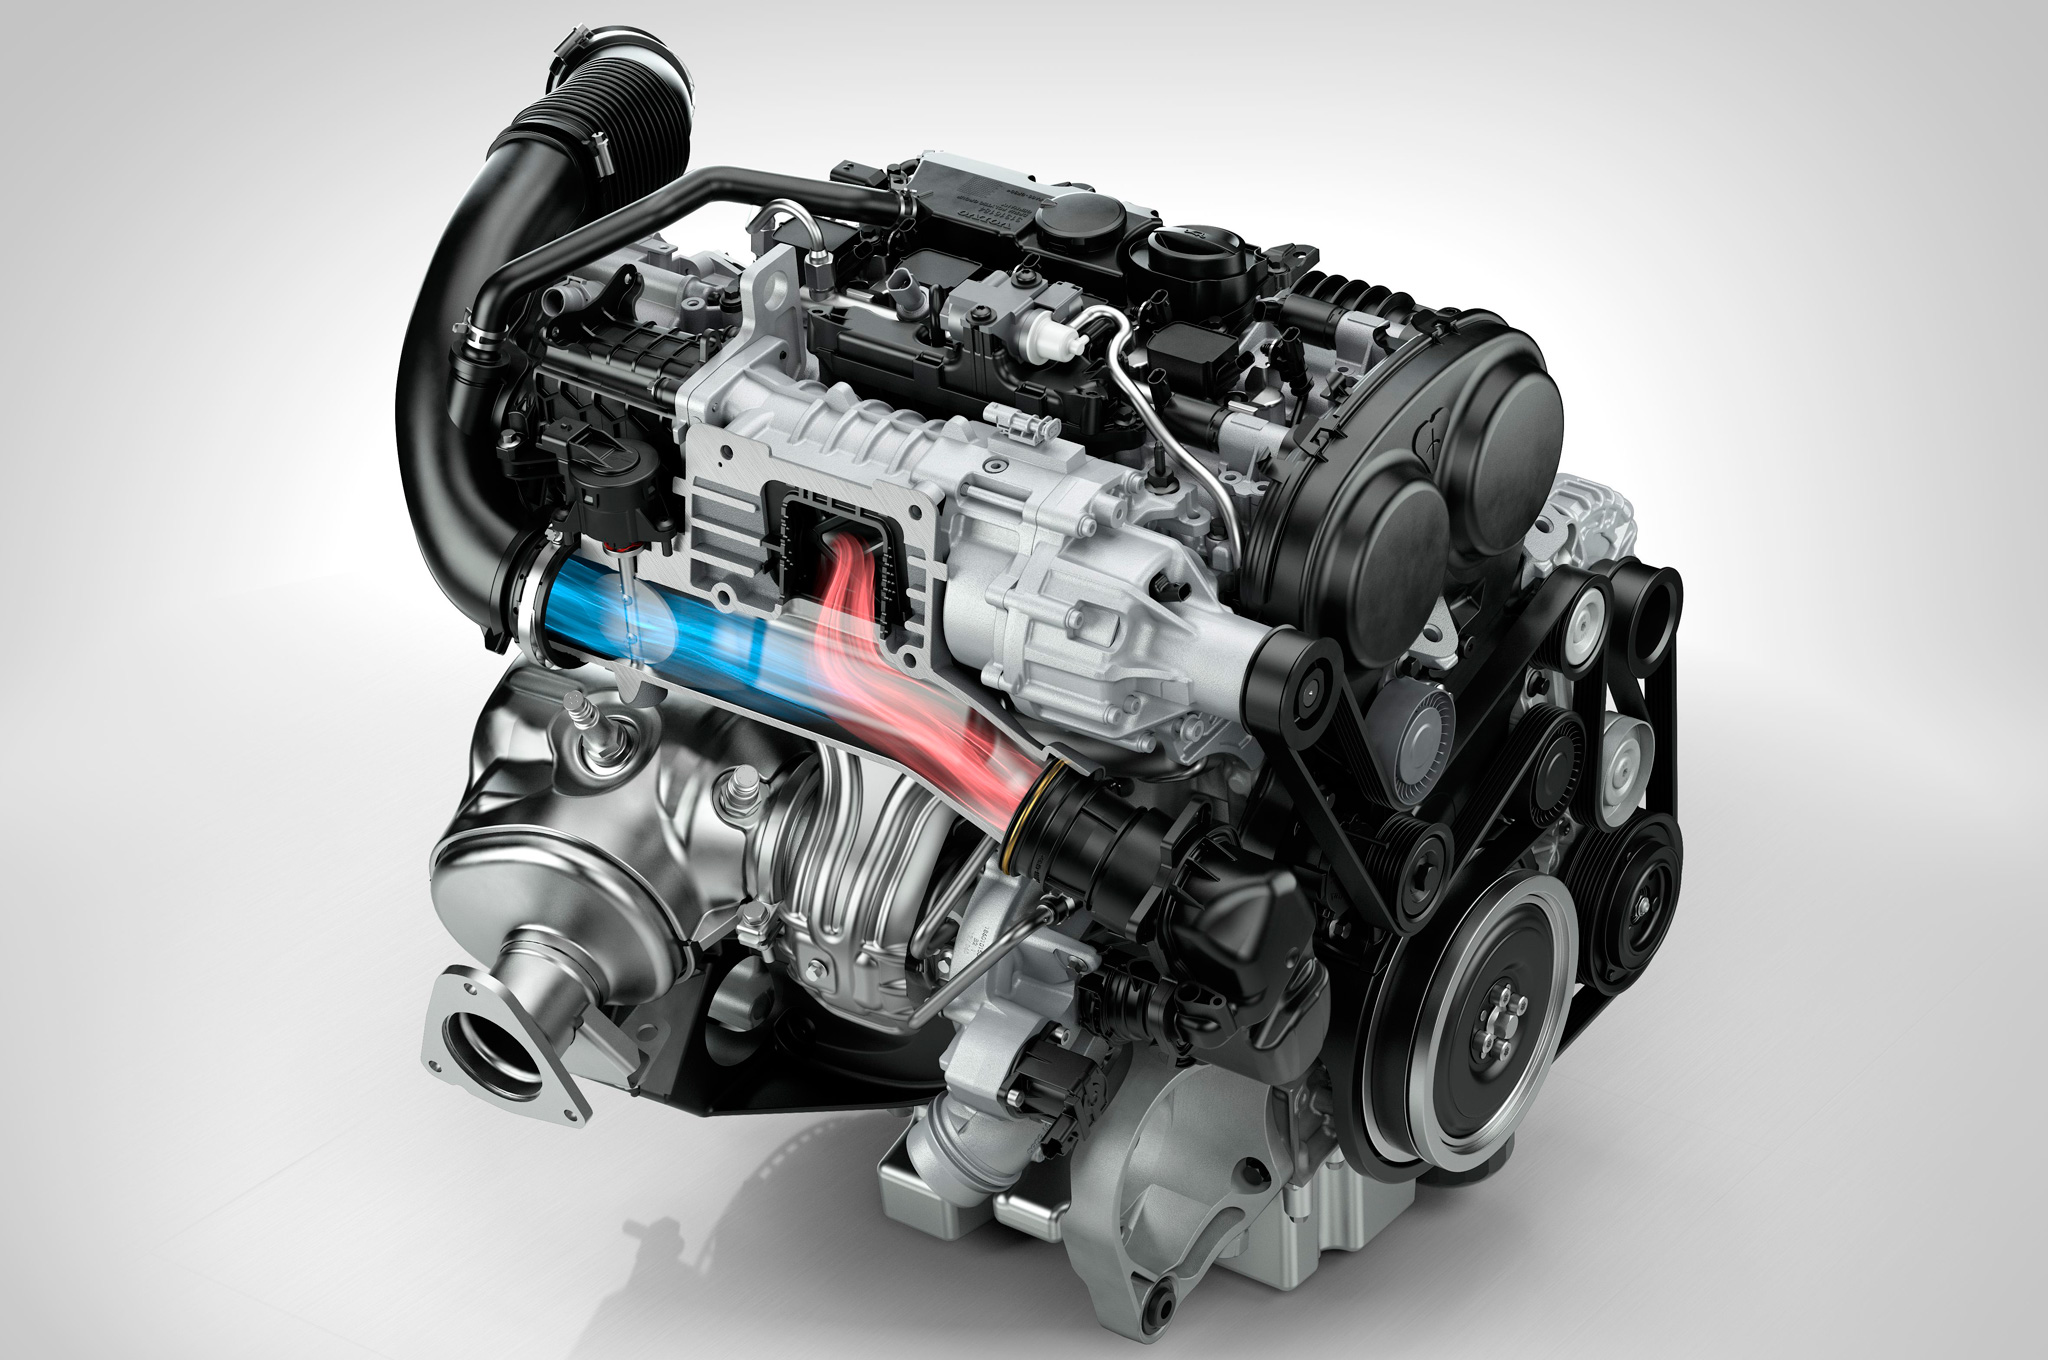 New Volvo Engine Family Includes 302-HP Twin-Charged I-4